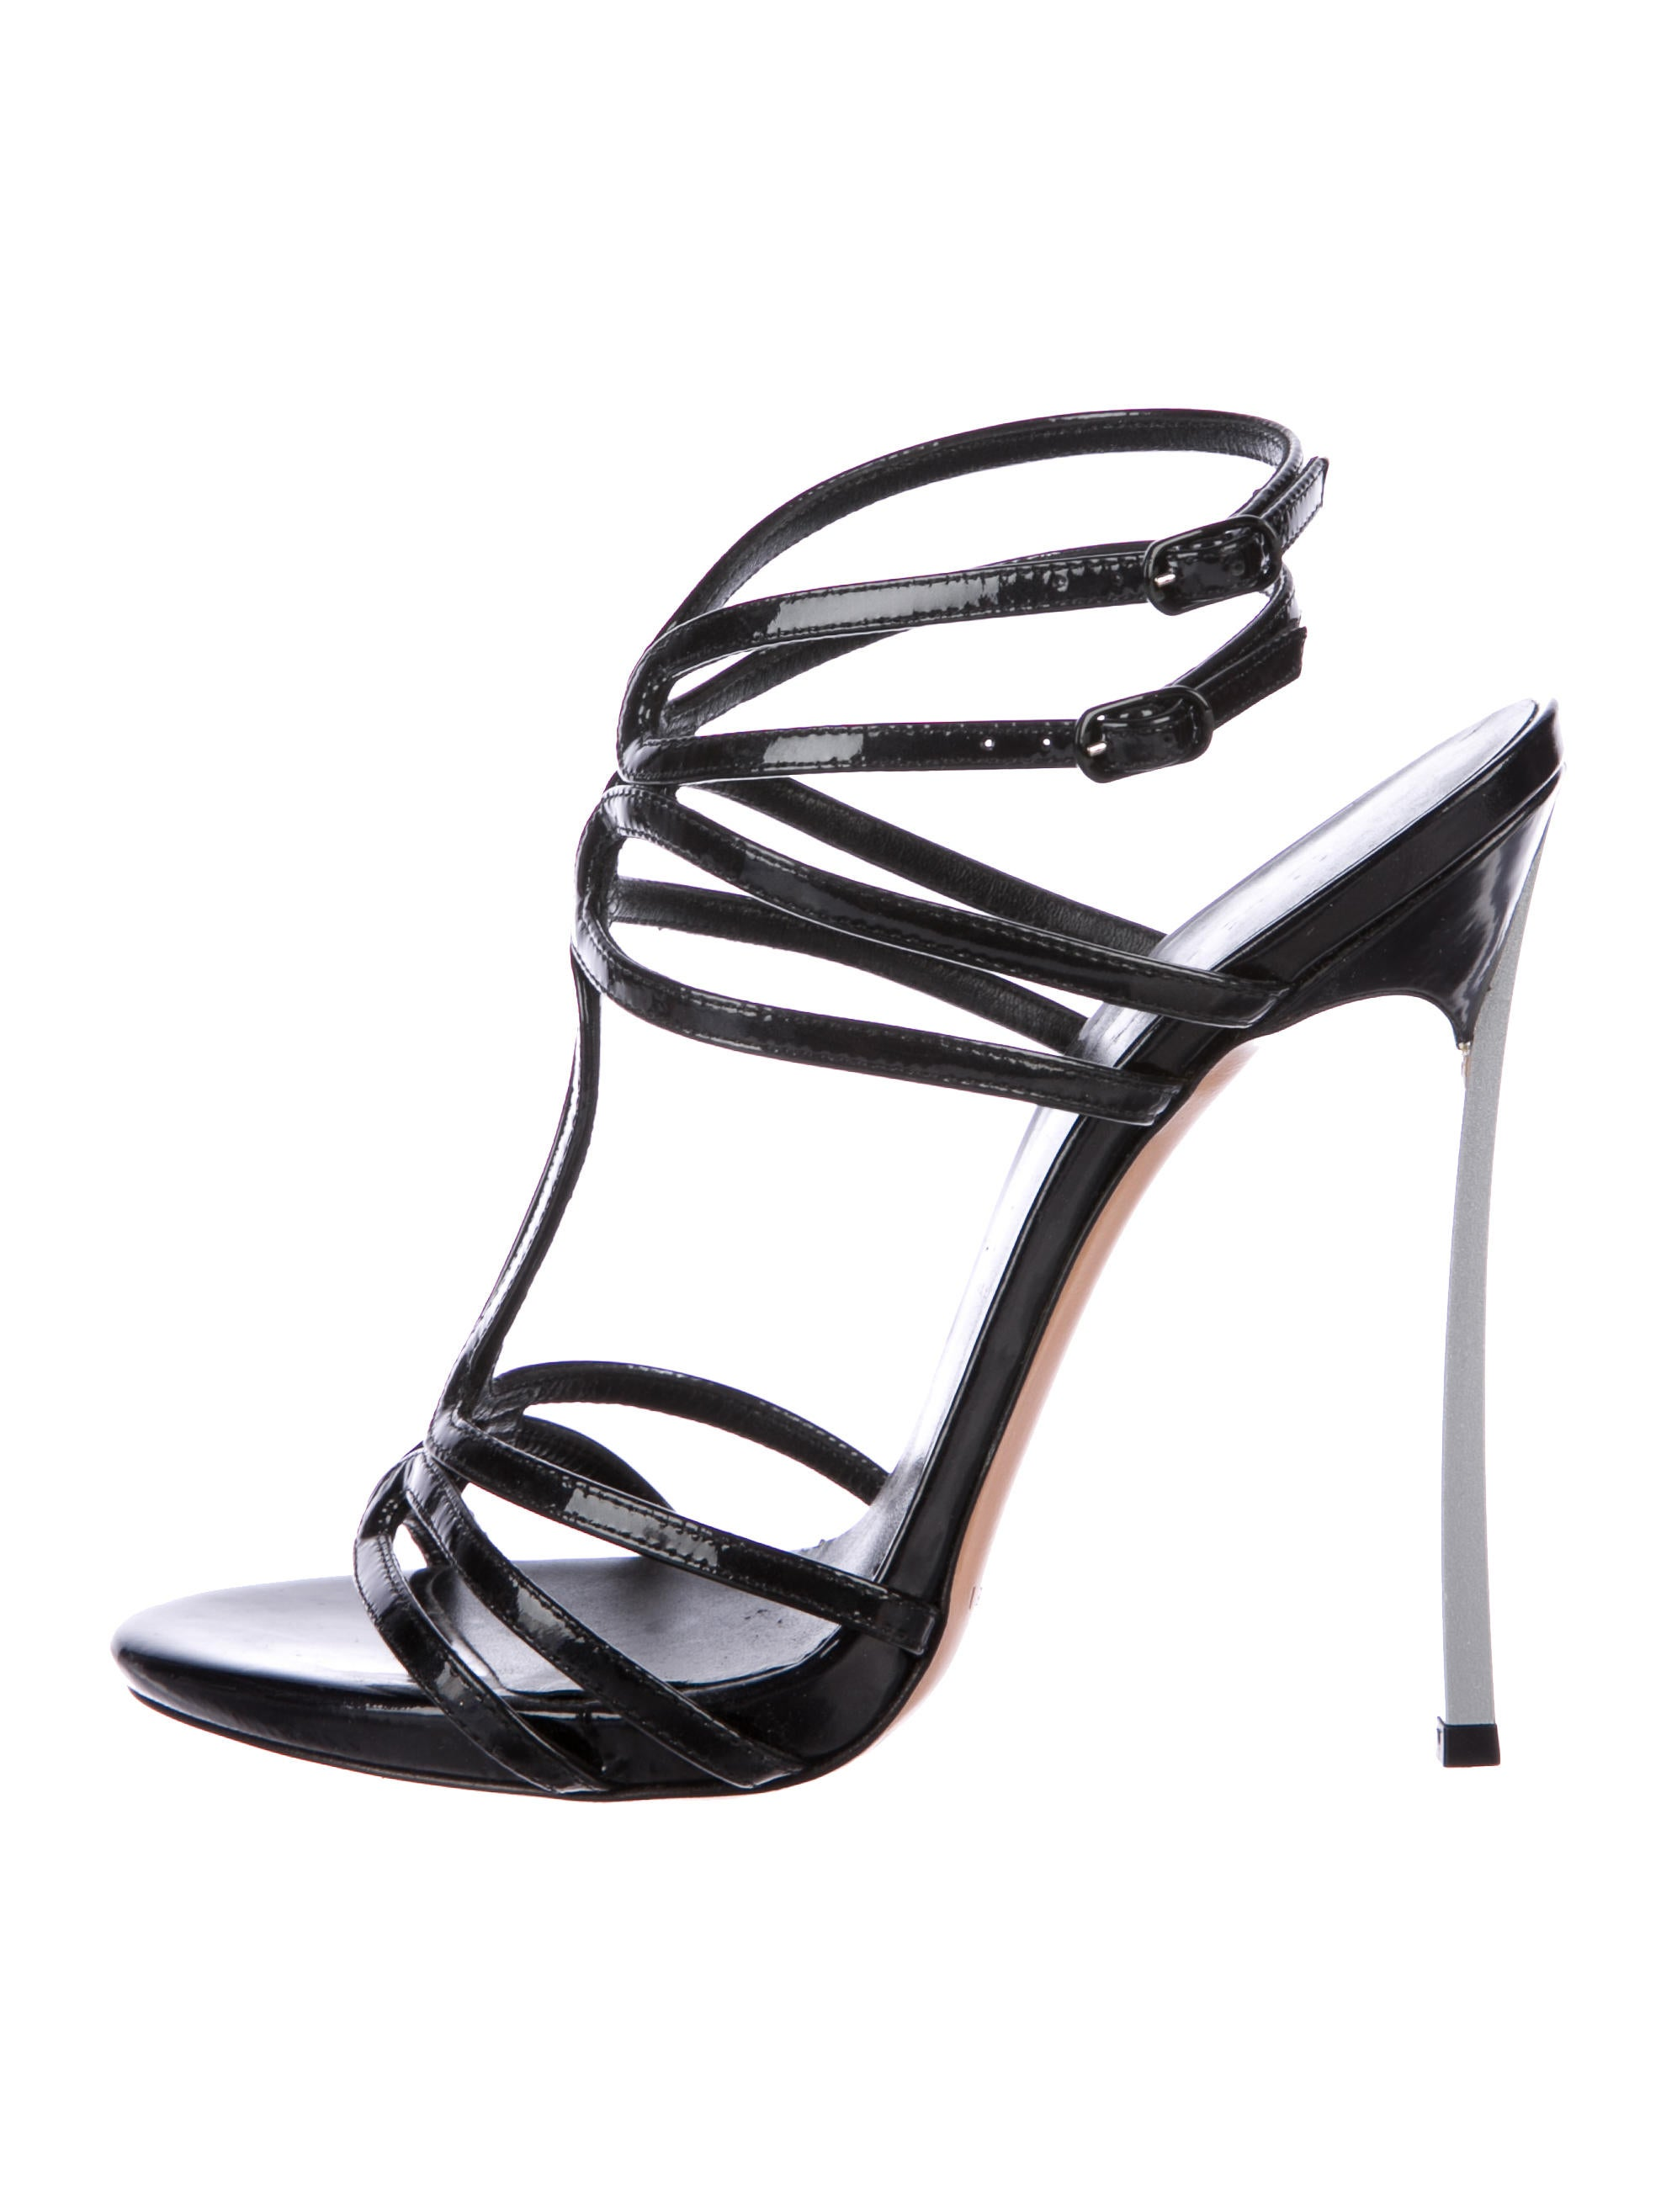 cheap sale 100% guaranteed Casadei Patent Leather Cage Sandals outlet perfect 6HG1V37PqE